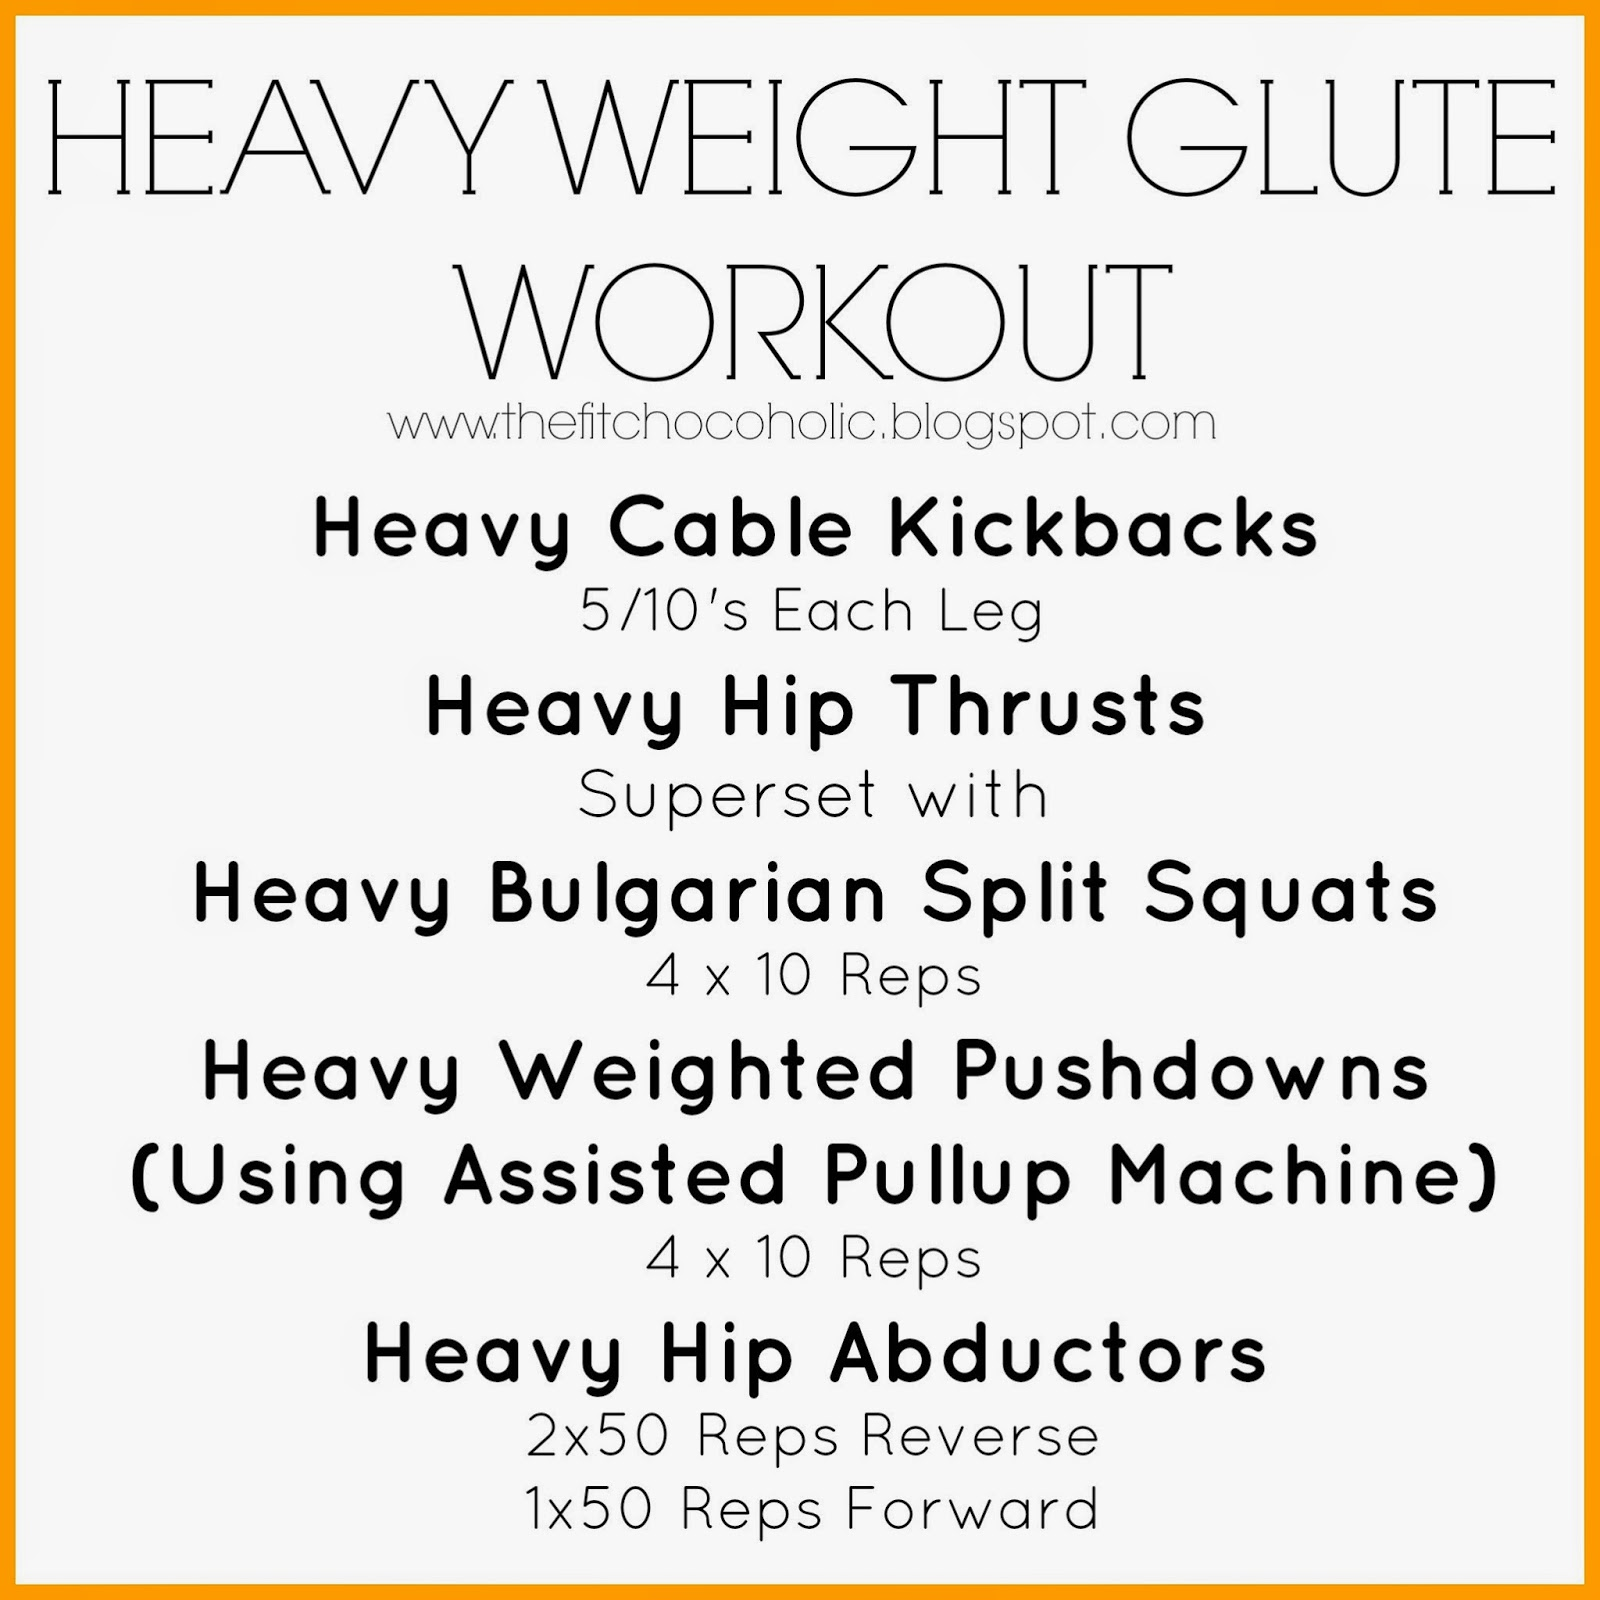 Heavy Weight Glute Workout